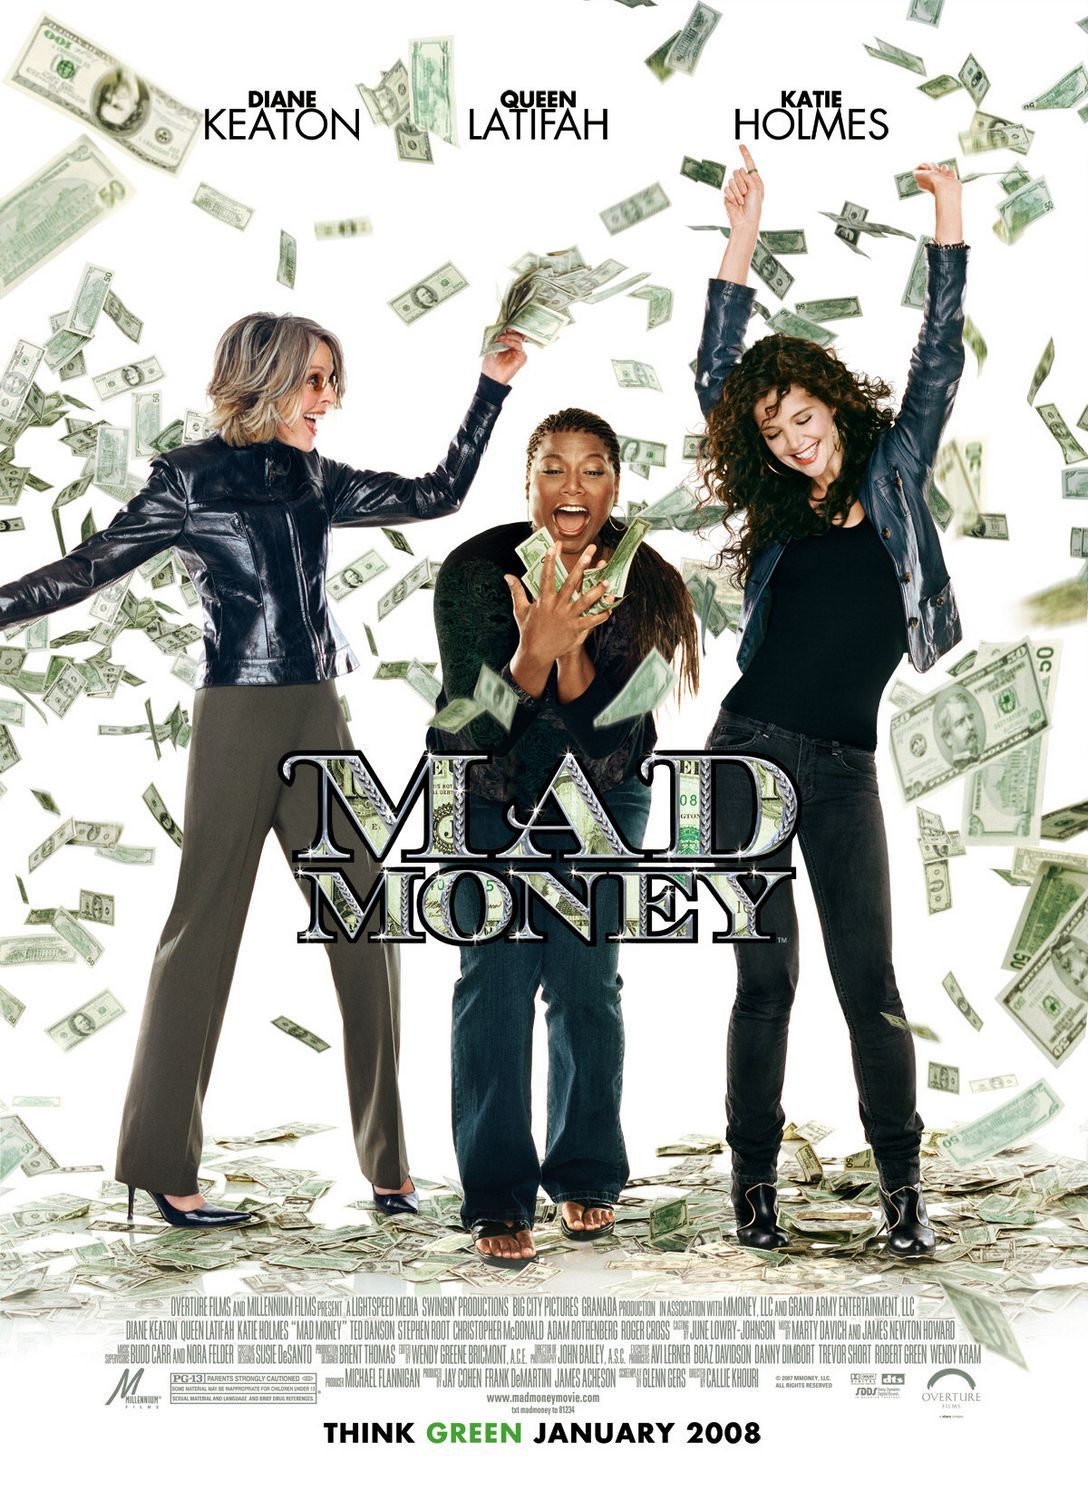 Mad Money - 3 Donne al Verde - Diane Keaton - Queen Latifah - Katie Holmes - film poster